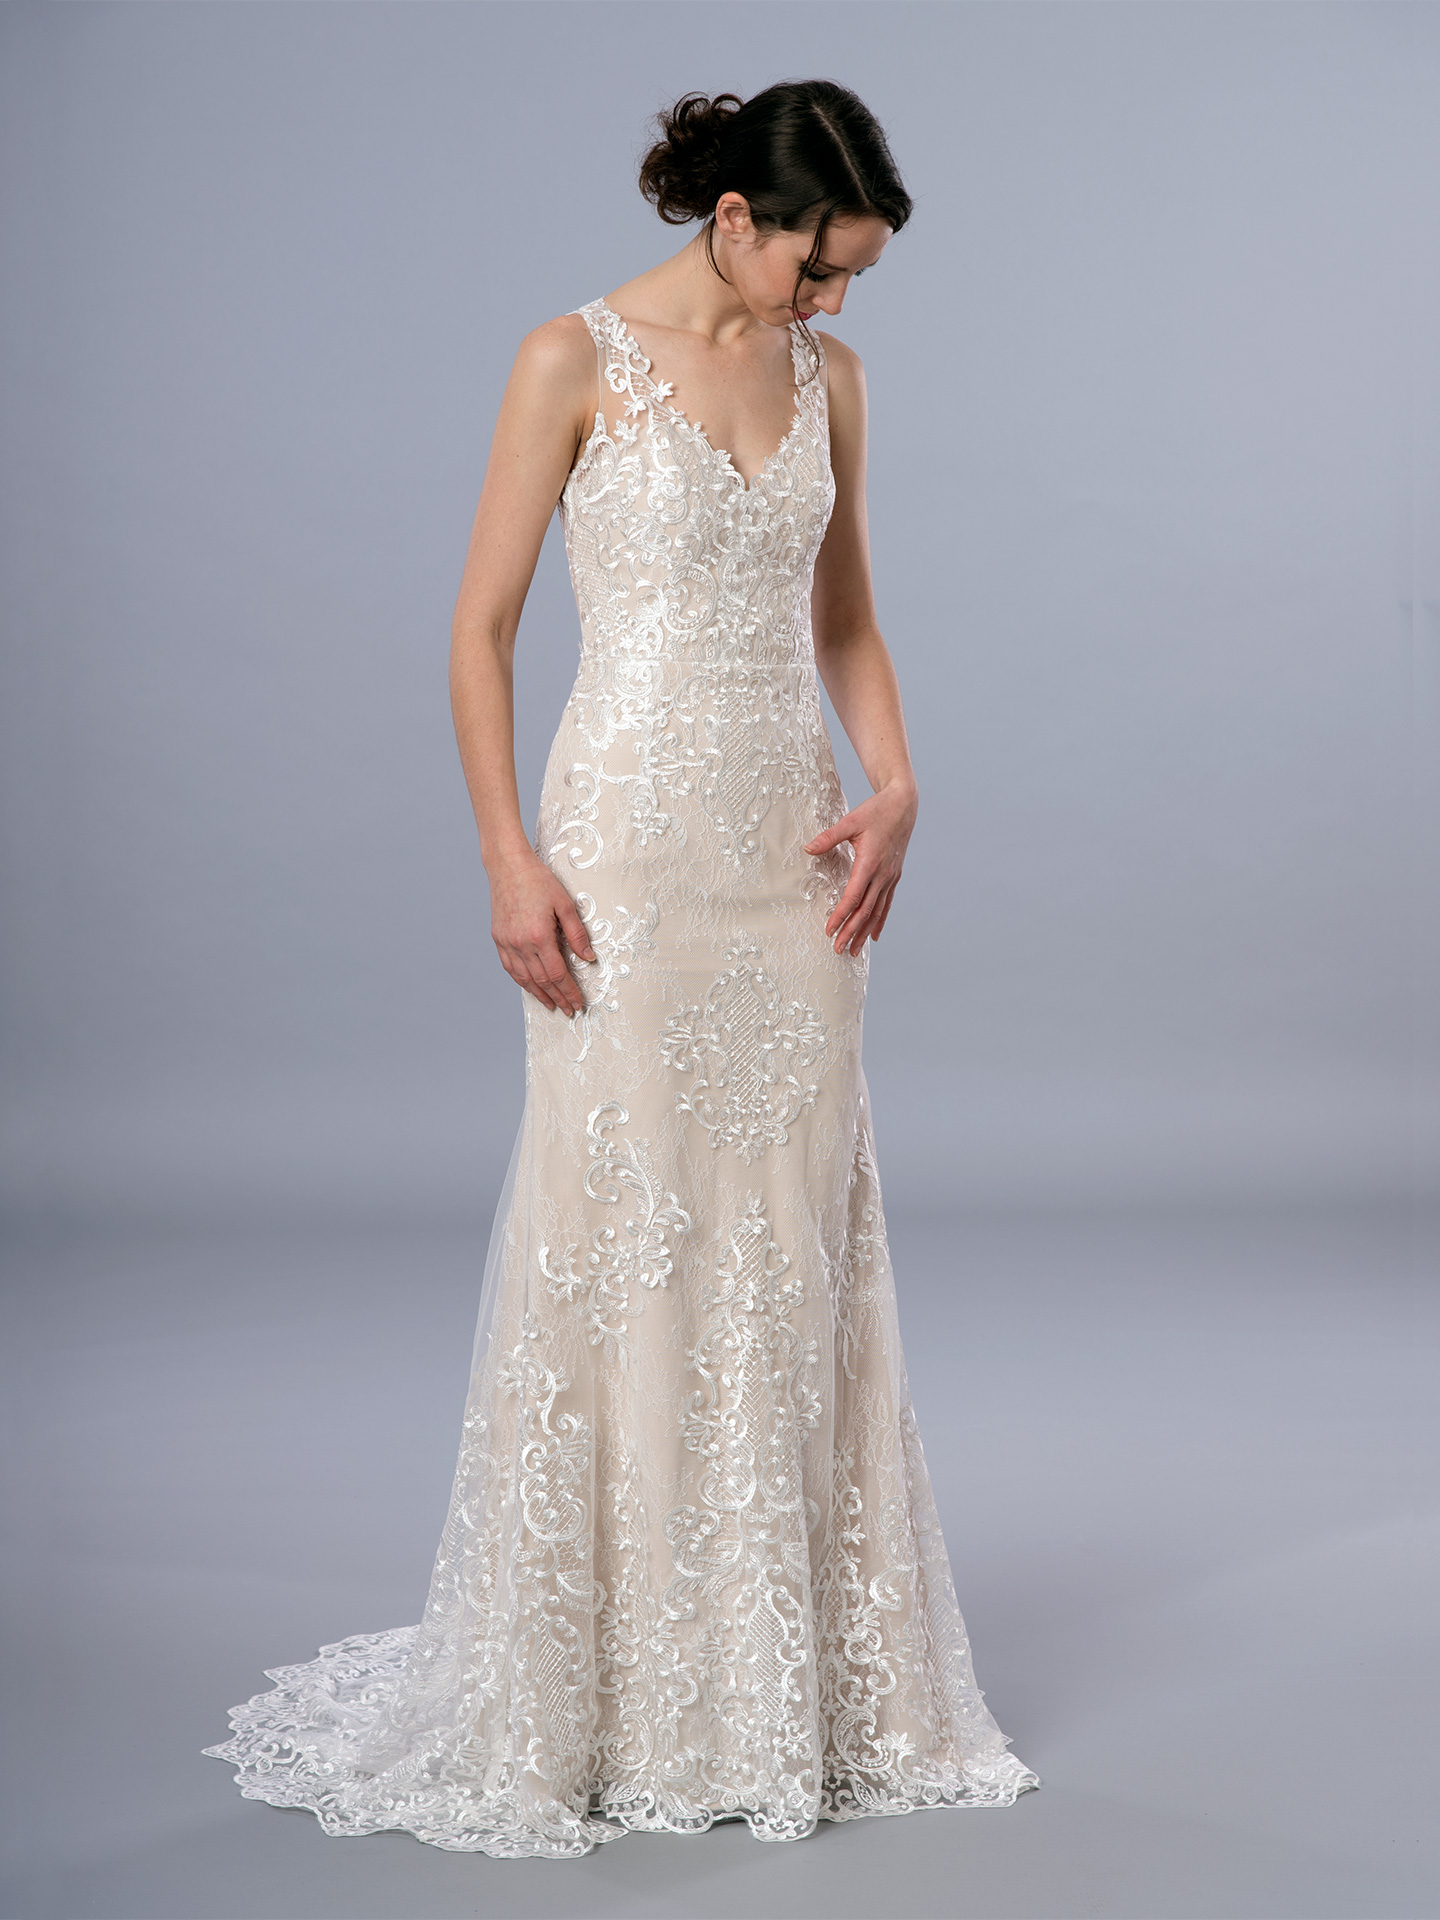 Sleeveless lace wedding dress 4068